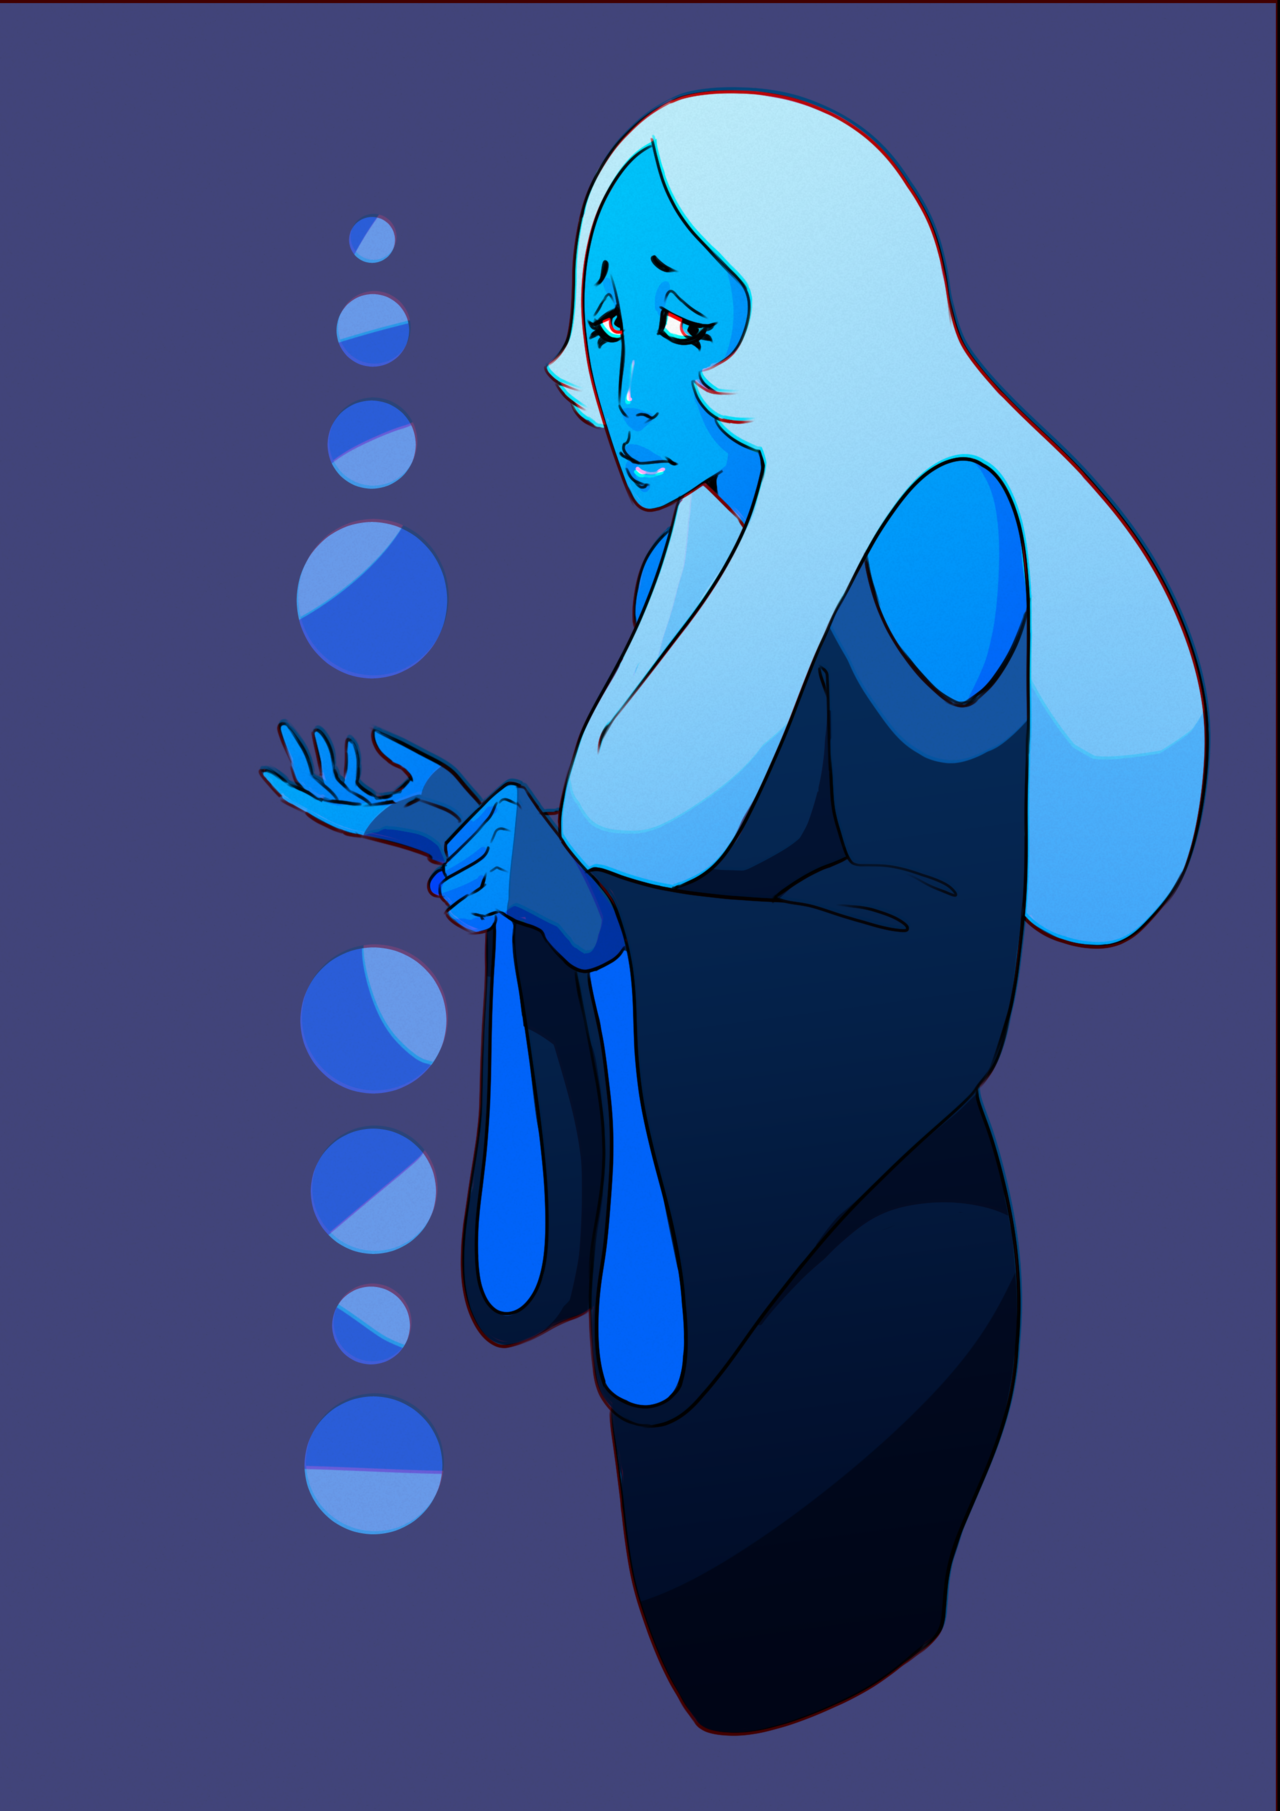 Blue Diamond https://www.instagram.com/thealexim/